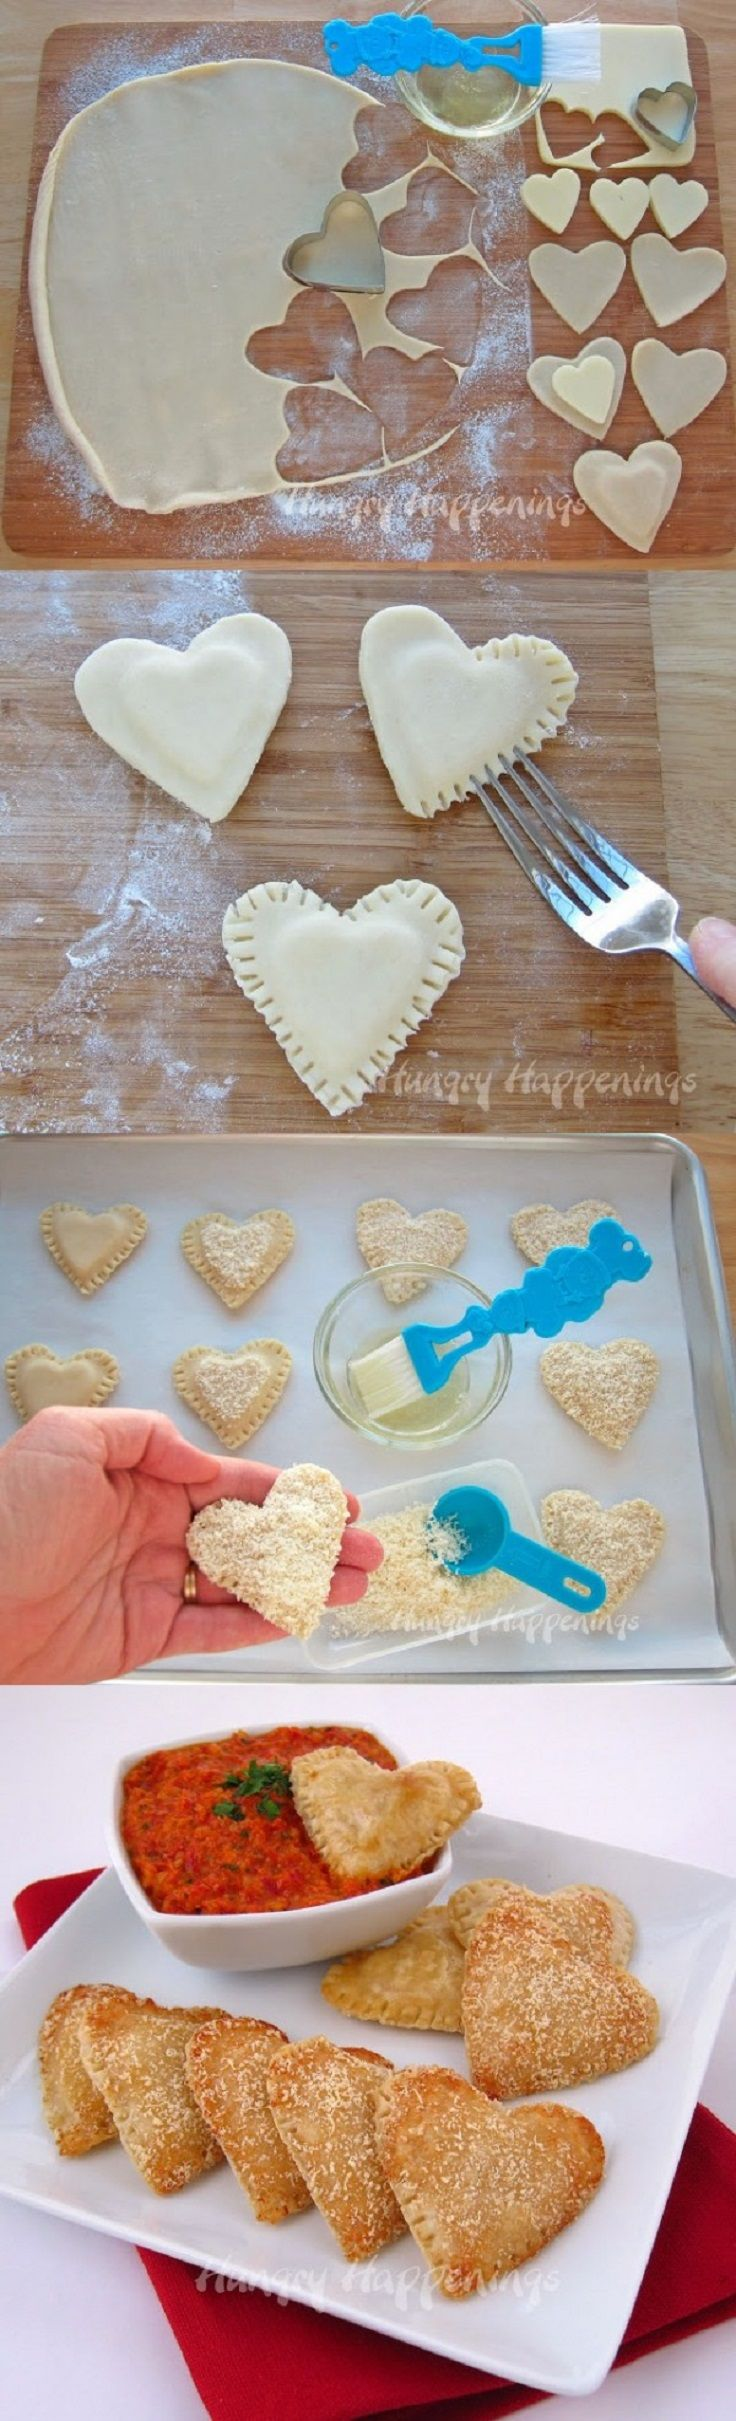 Mozzarella Cheese Filled Hearts with Roasted Red Pepper Pesto - Precious Valentine's Day Food List: 17 Loveable Recipes for a Special Celebration